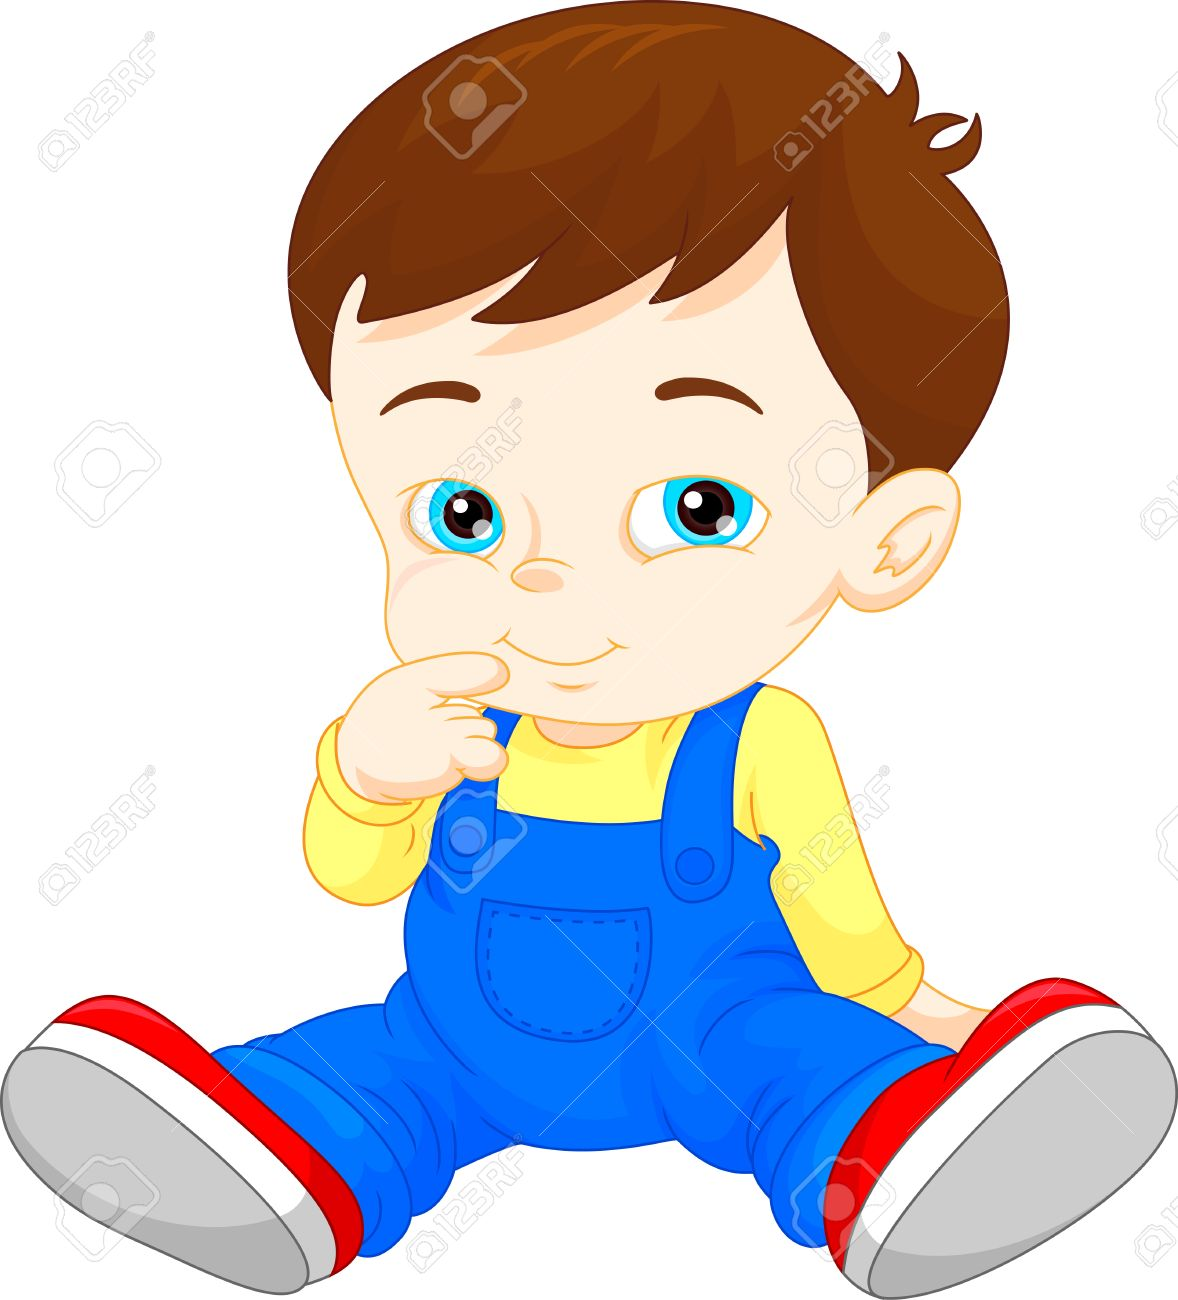 Baby Boy Clipart Images.